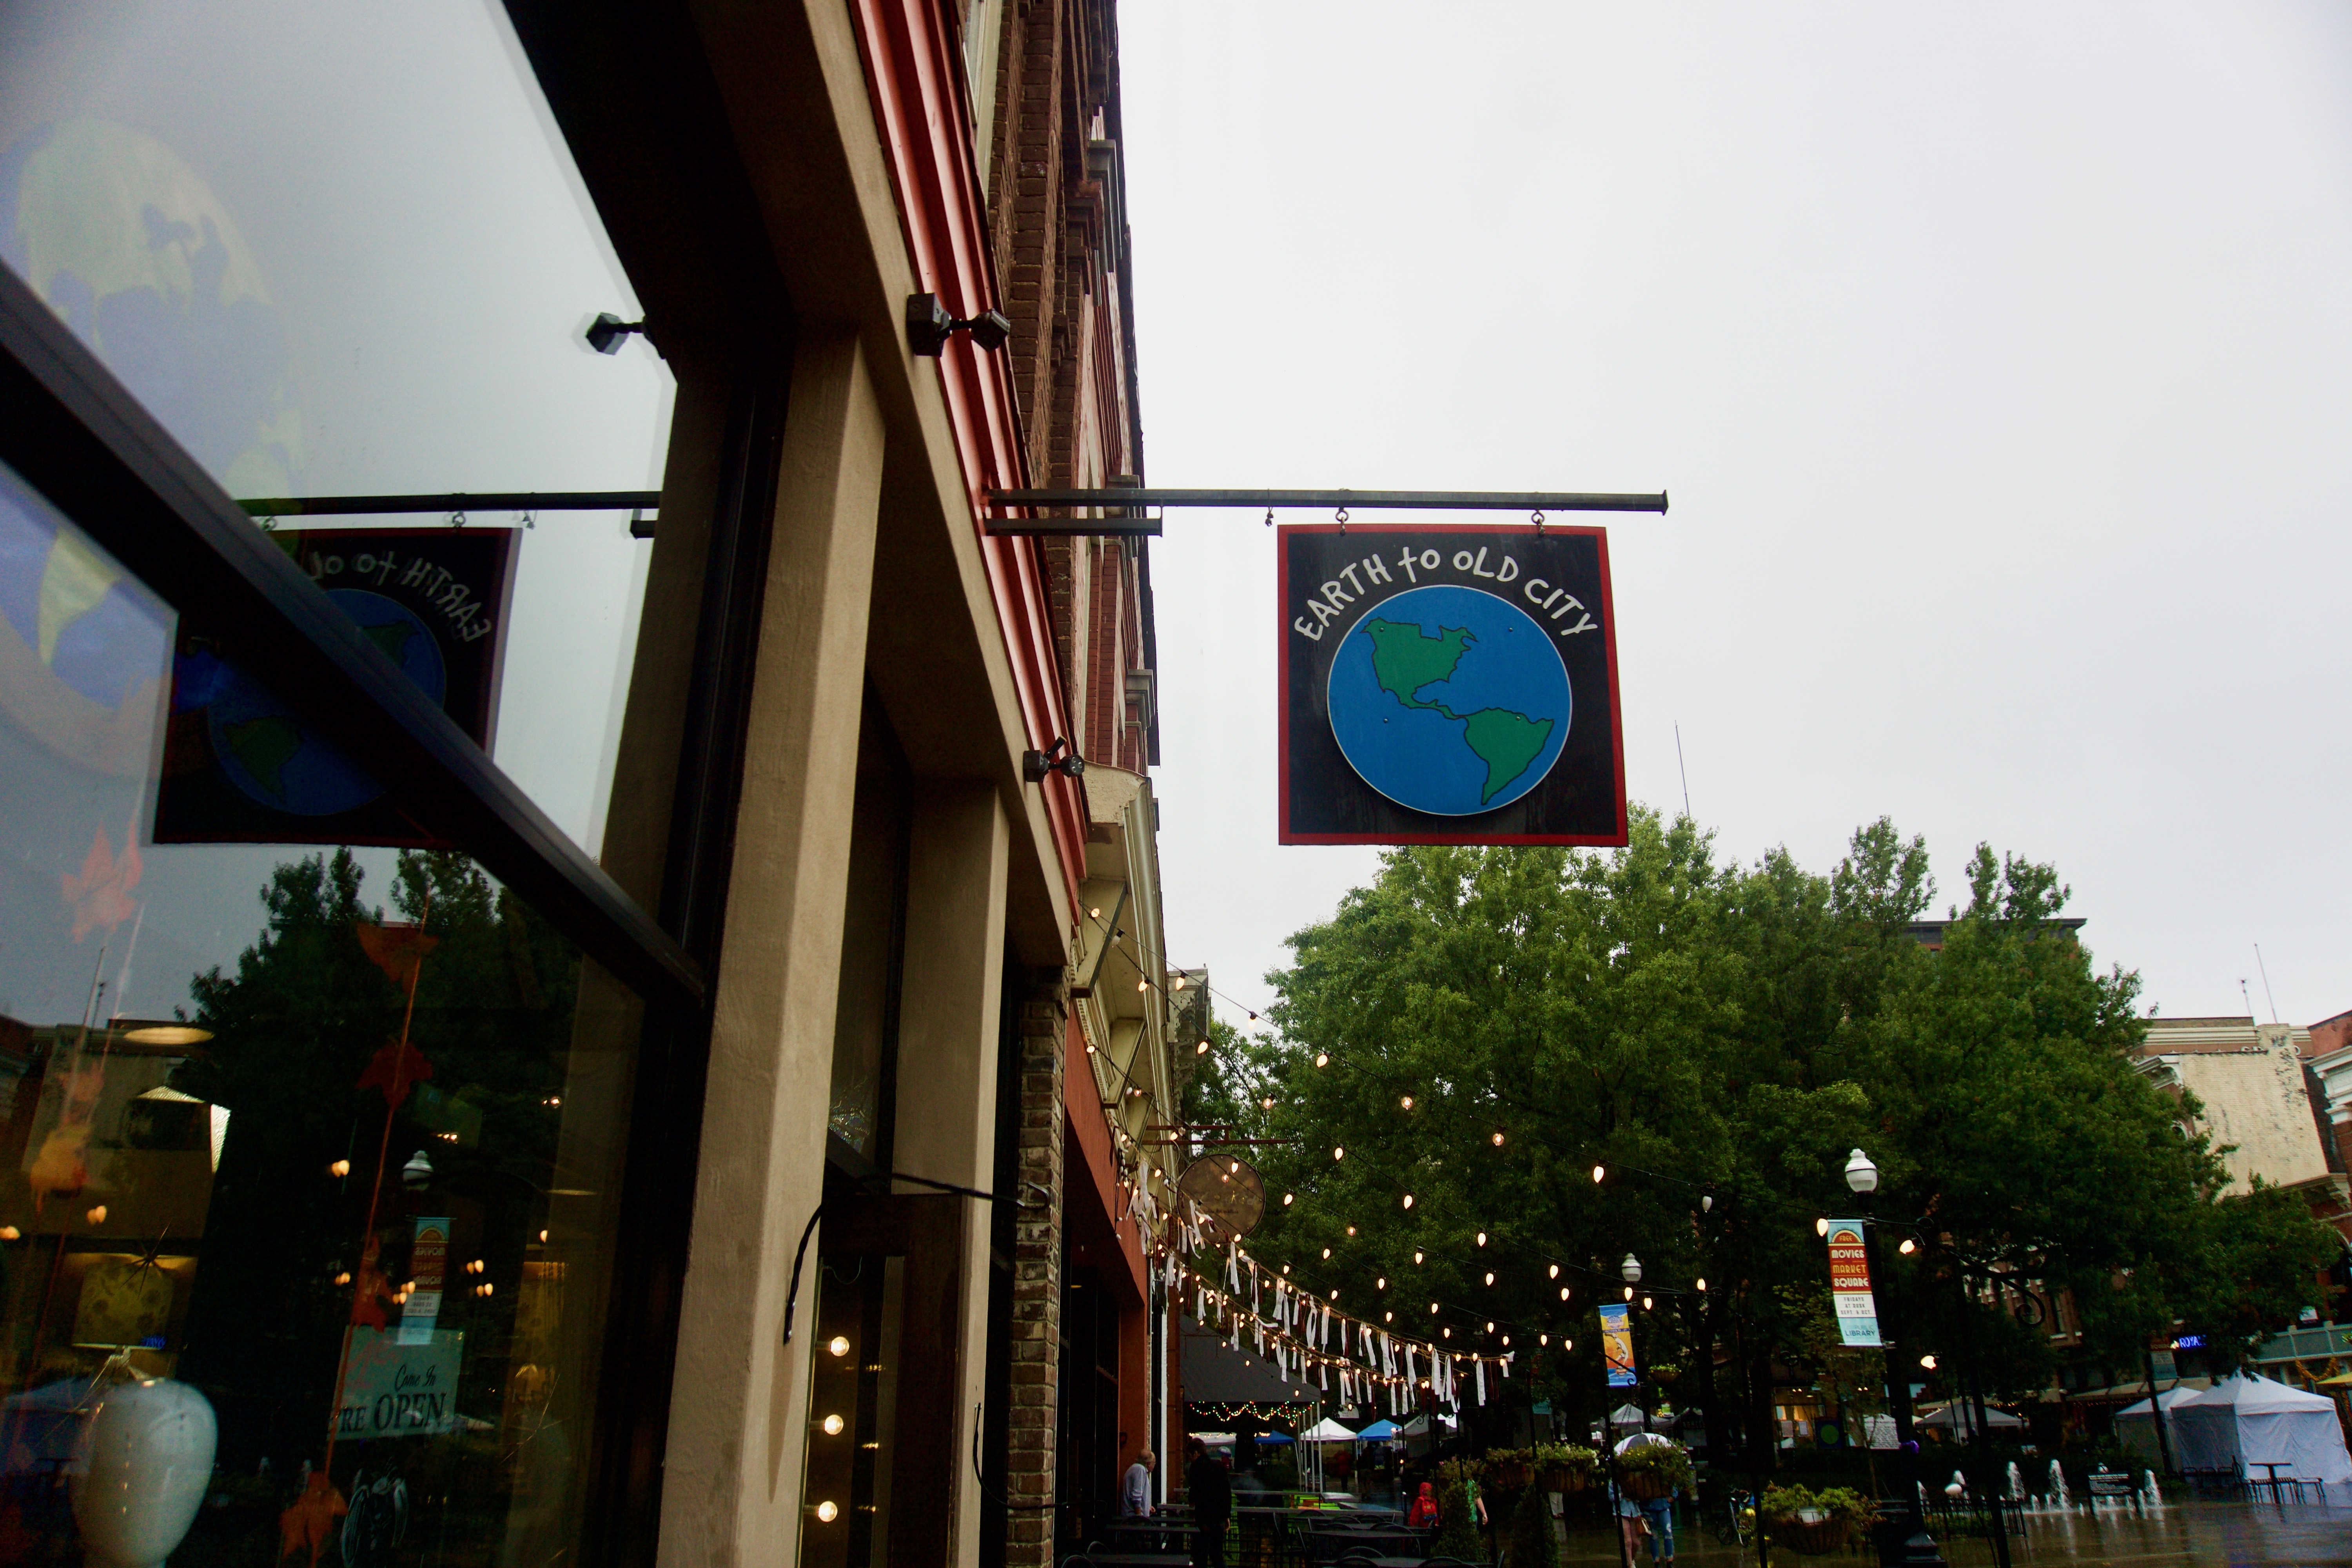 Earth to Old City, Knoxville